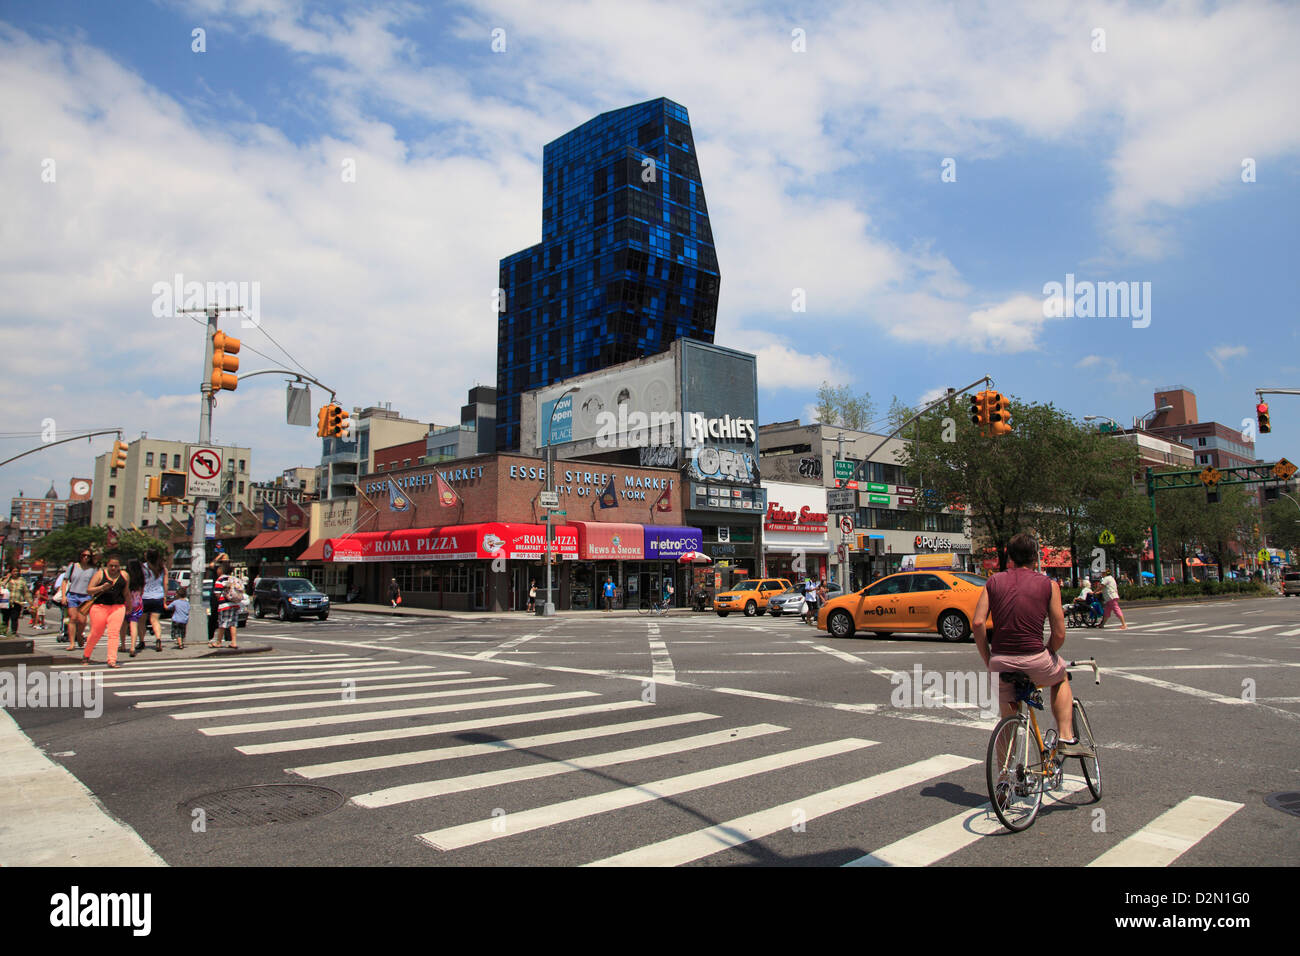 Blue Building, Luxury Apartment Building, Delancey Street, Lower East Side,  Manhattan, New York City, USA